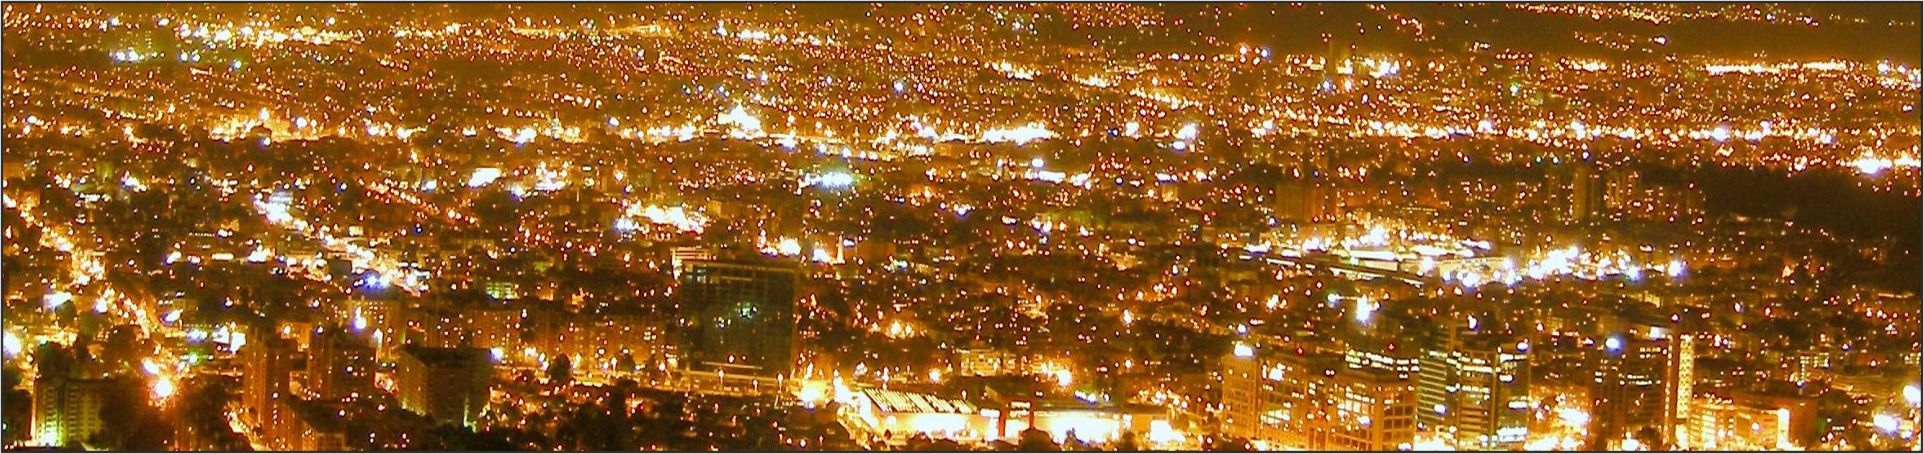 Light pollution a cause for concern in India Image